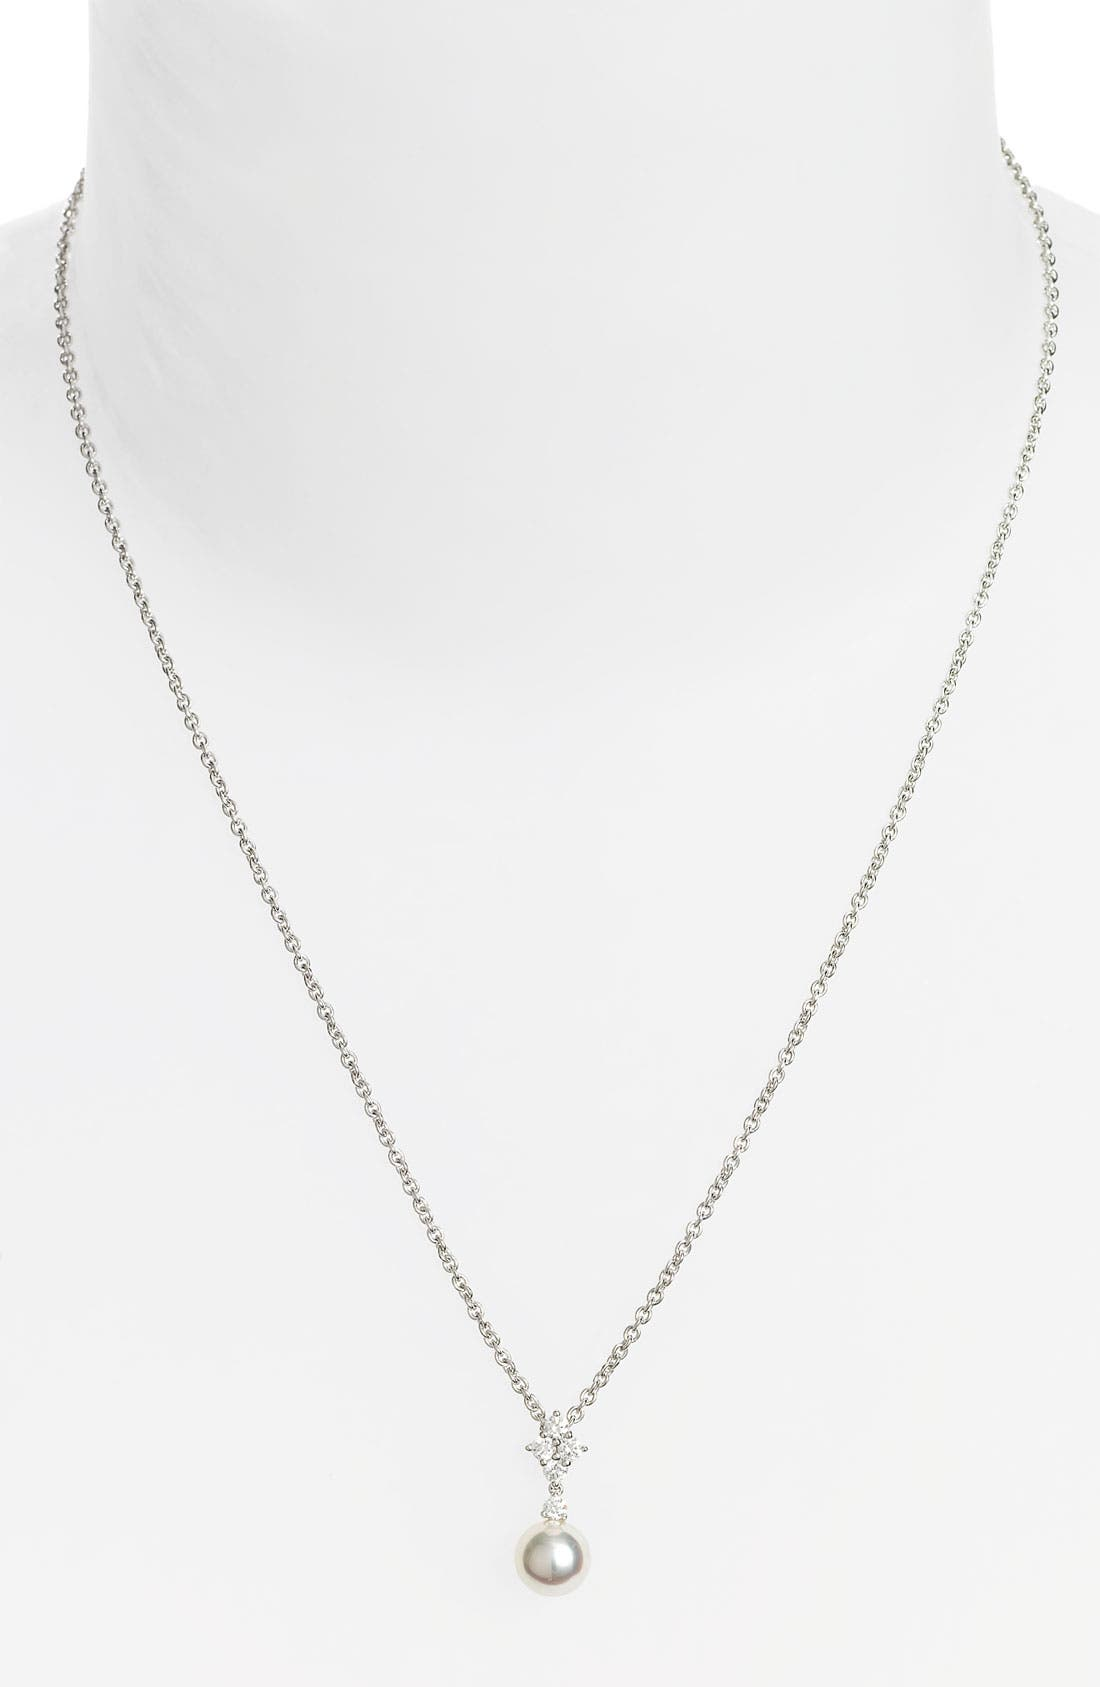 Main Image - Mikimoto 'Classic Elegance' Akoya Cultured Pearl & Diamond Necklace